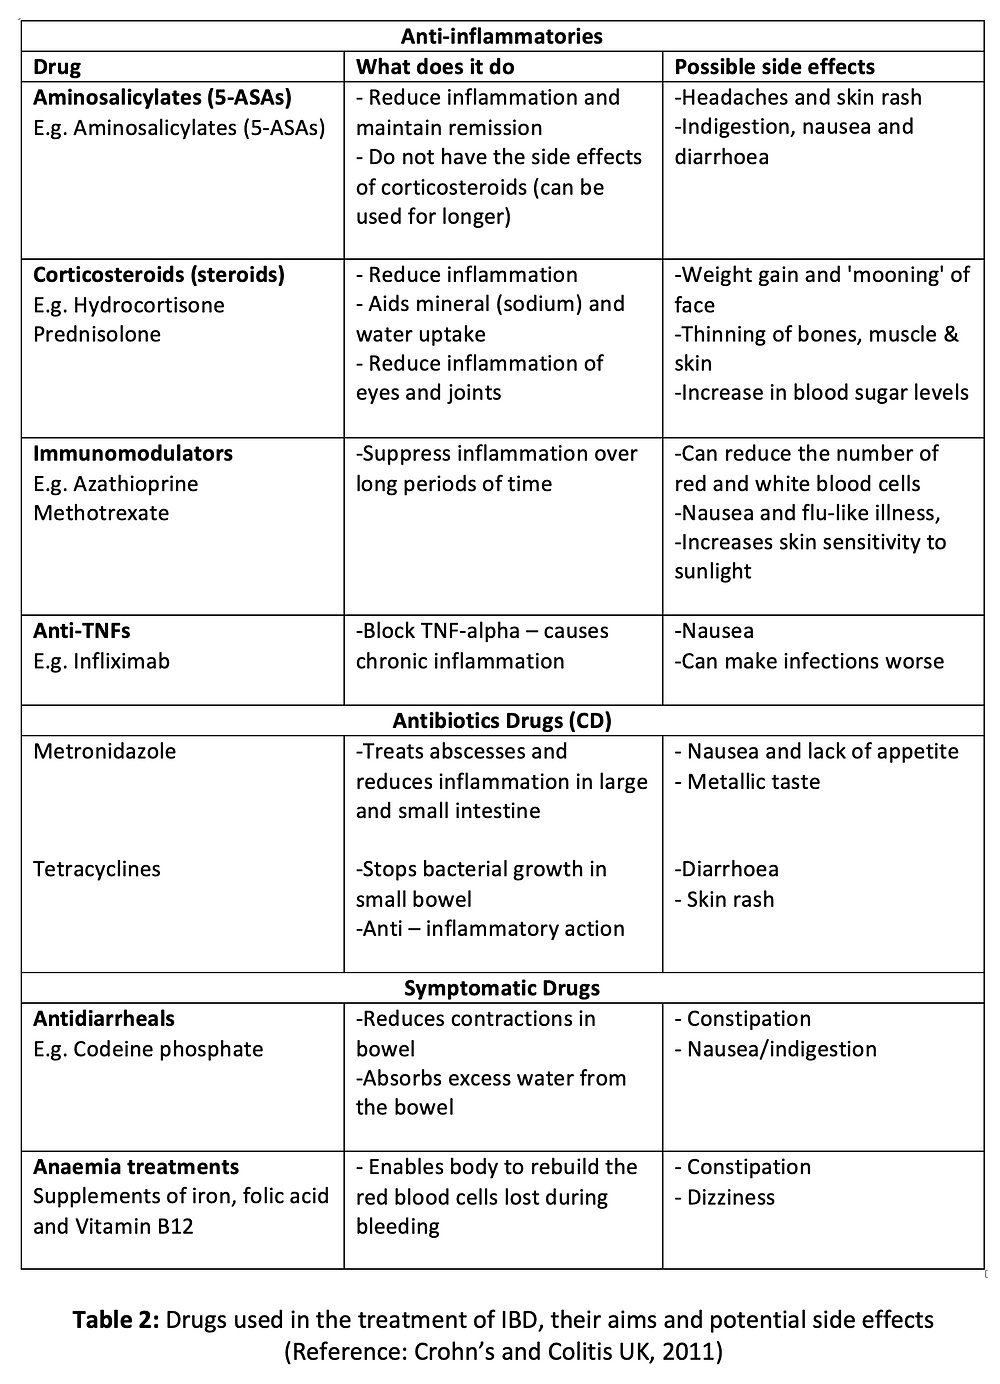 Drugs used in the treatment of IBD, their aims and potential side effects (Reference: Crohn's and Colitis UK, 2011)